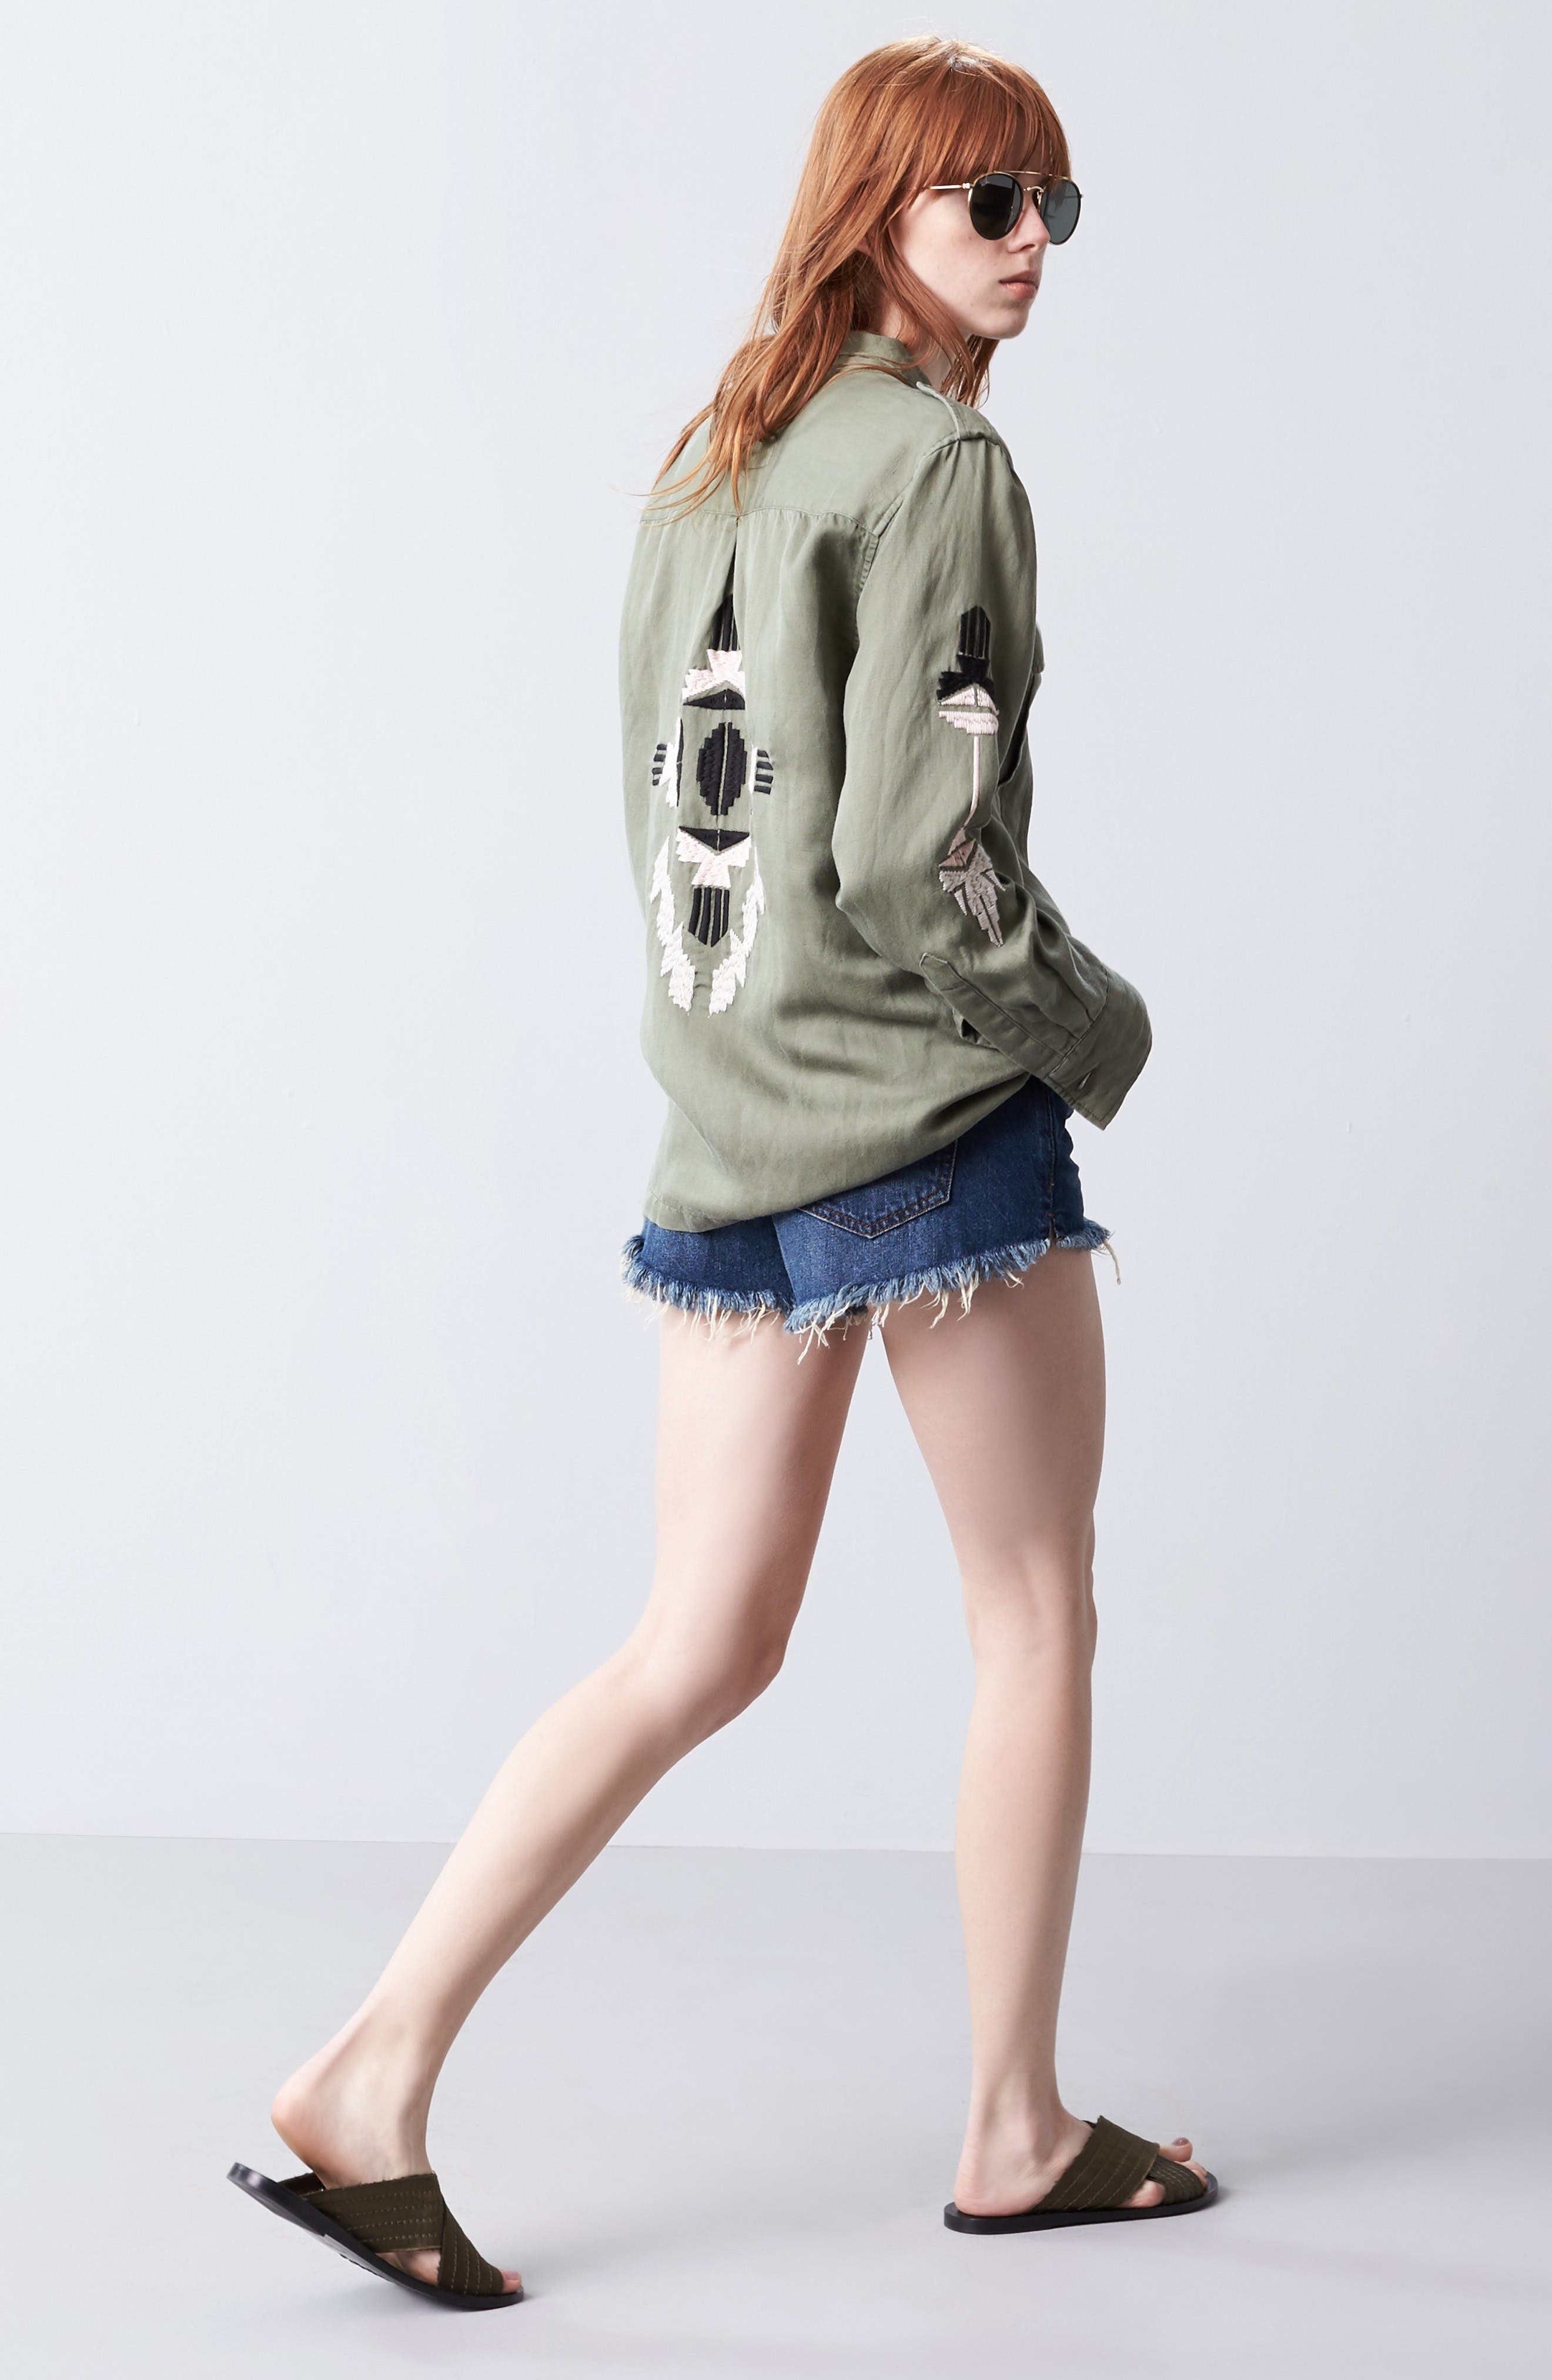 Rails Jacket & Free People Shorts Outfit with Accessories